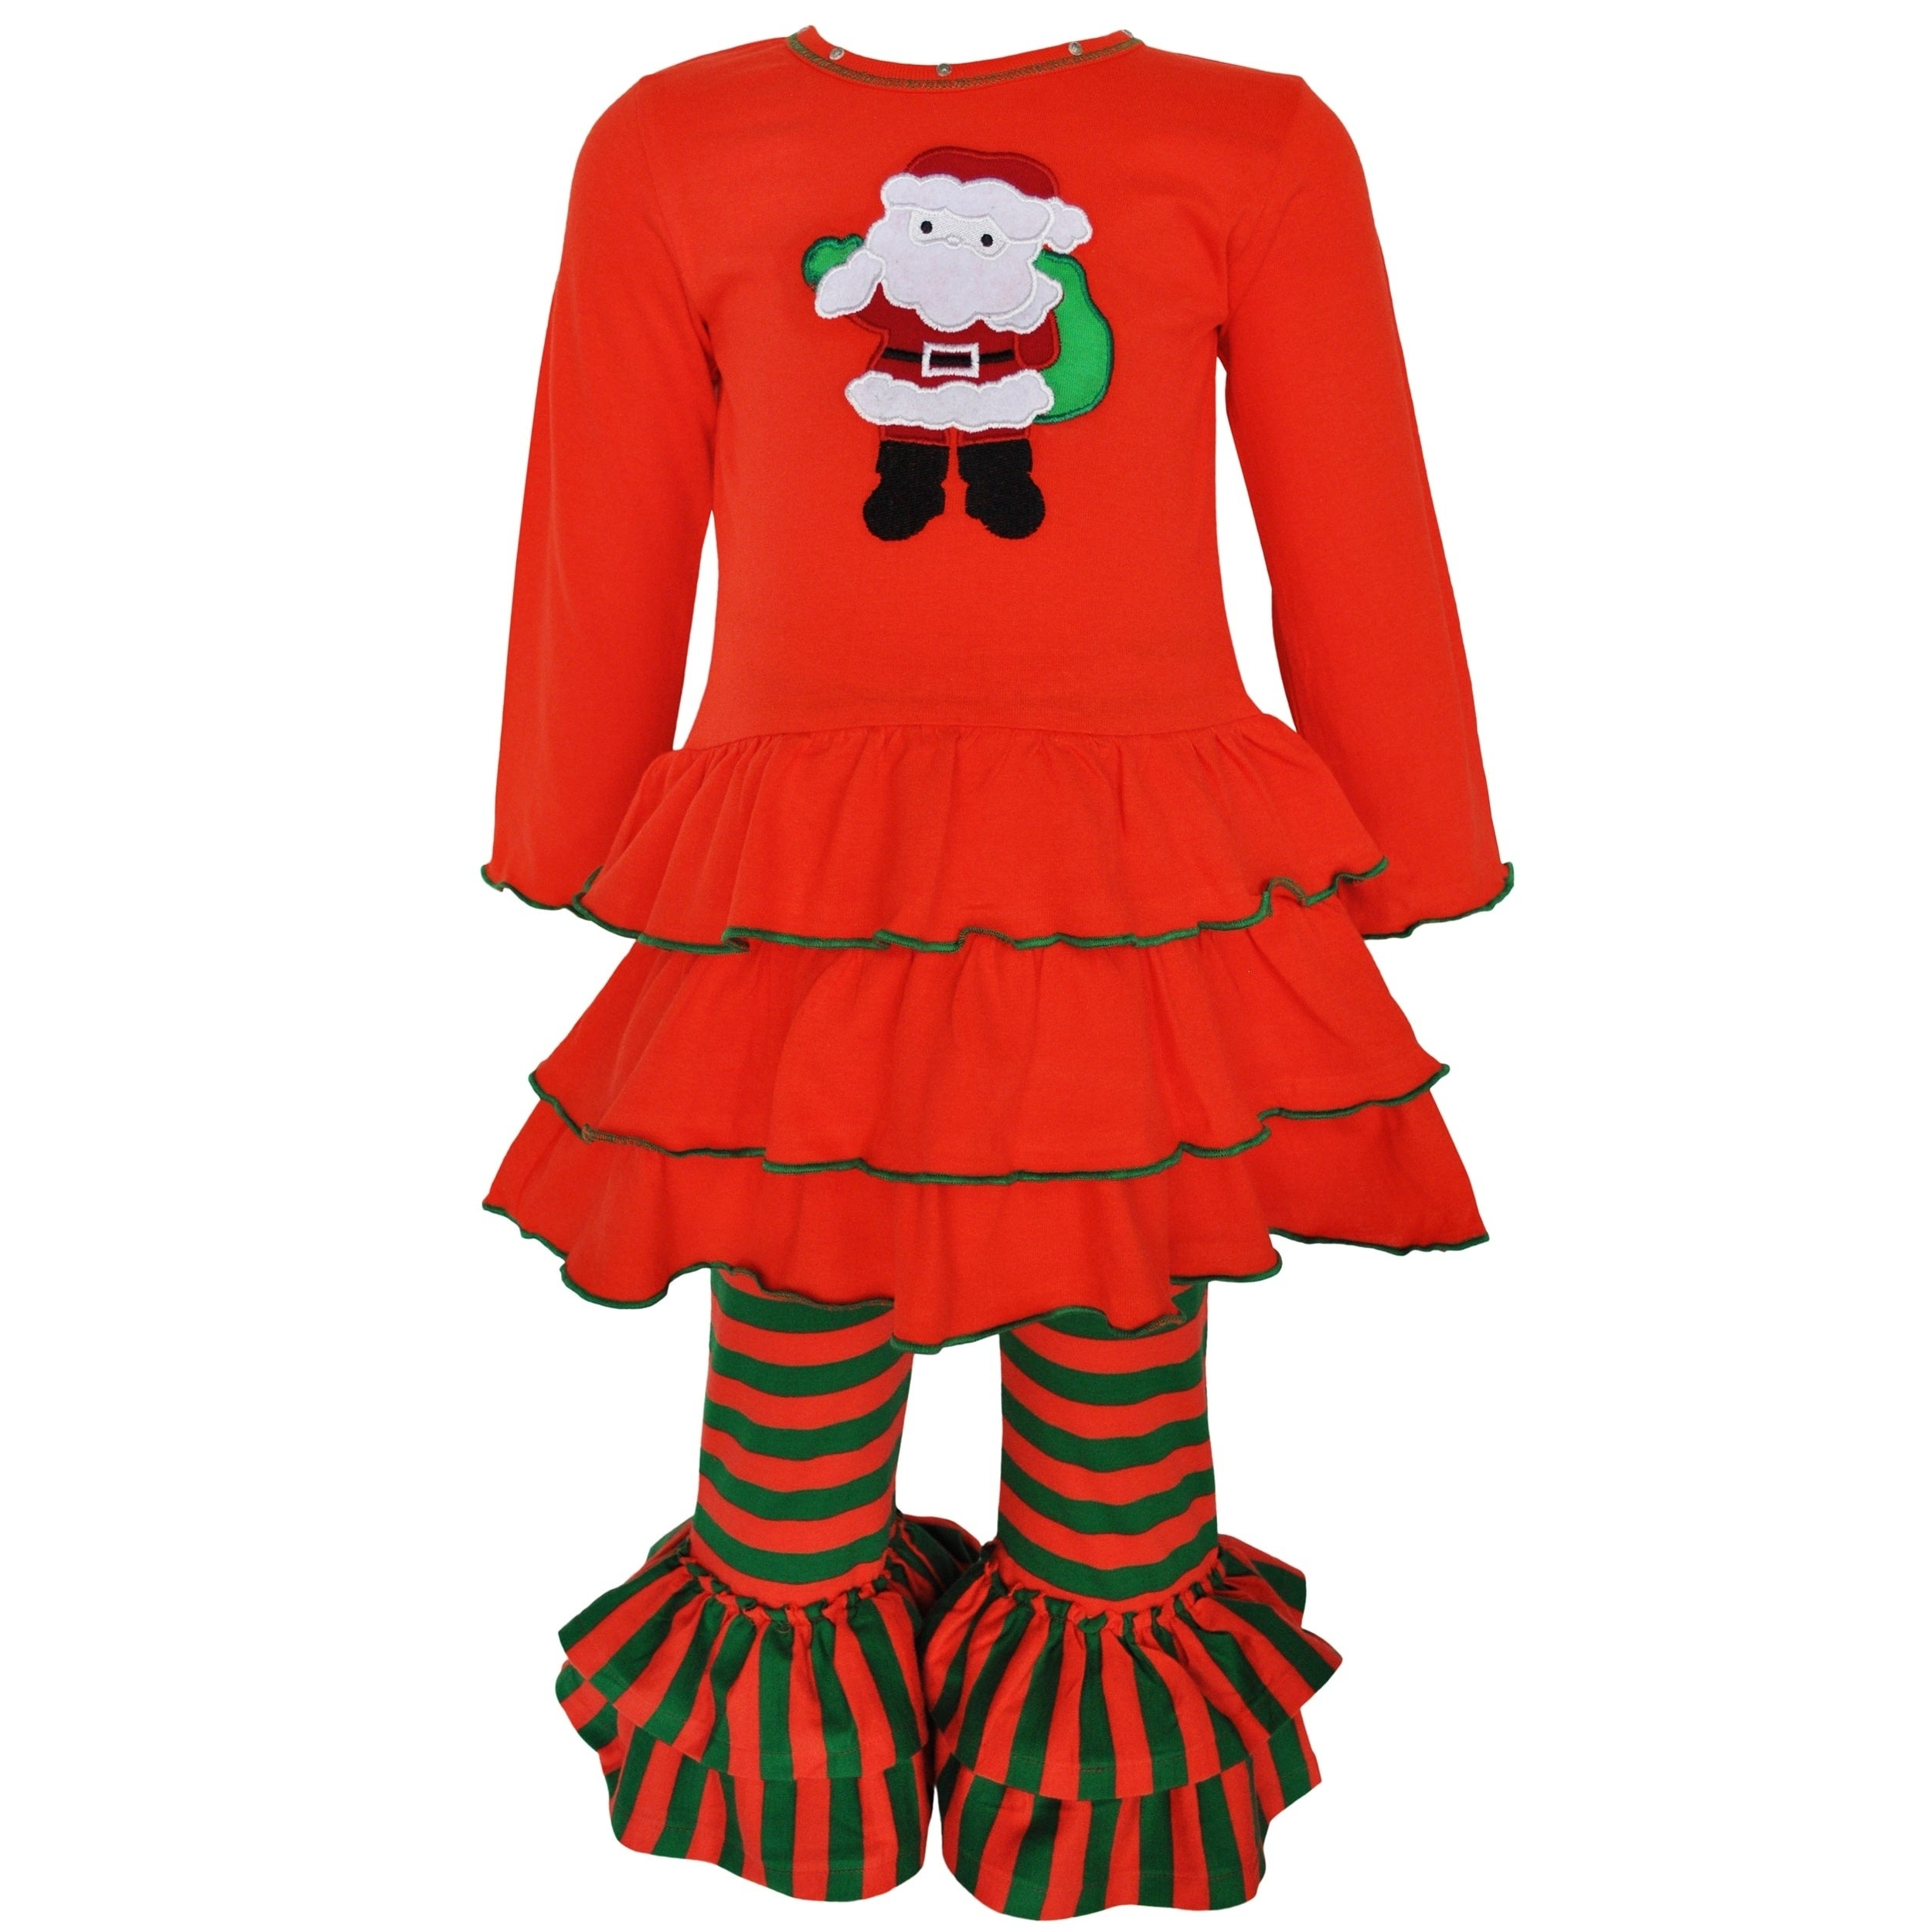 9dac6cbd683d Toddler Holiday Dresses Boutiques - raveitsafe